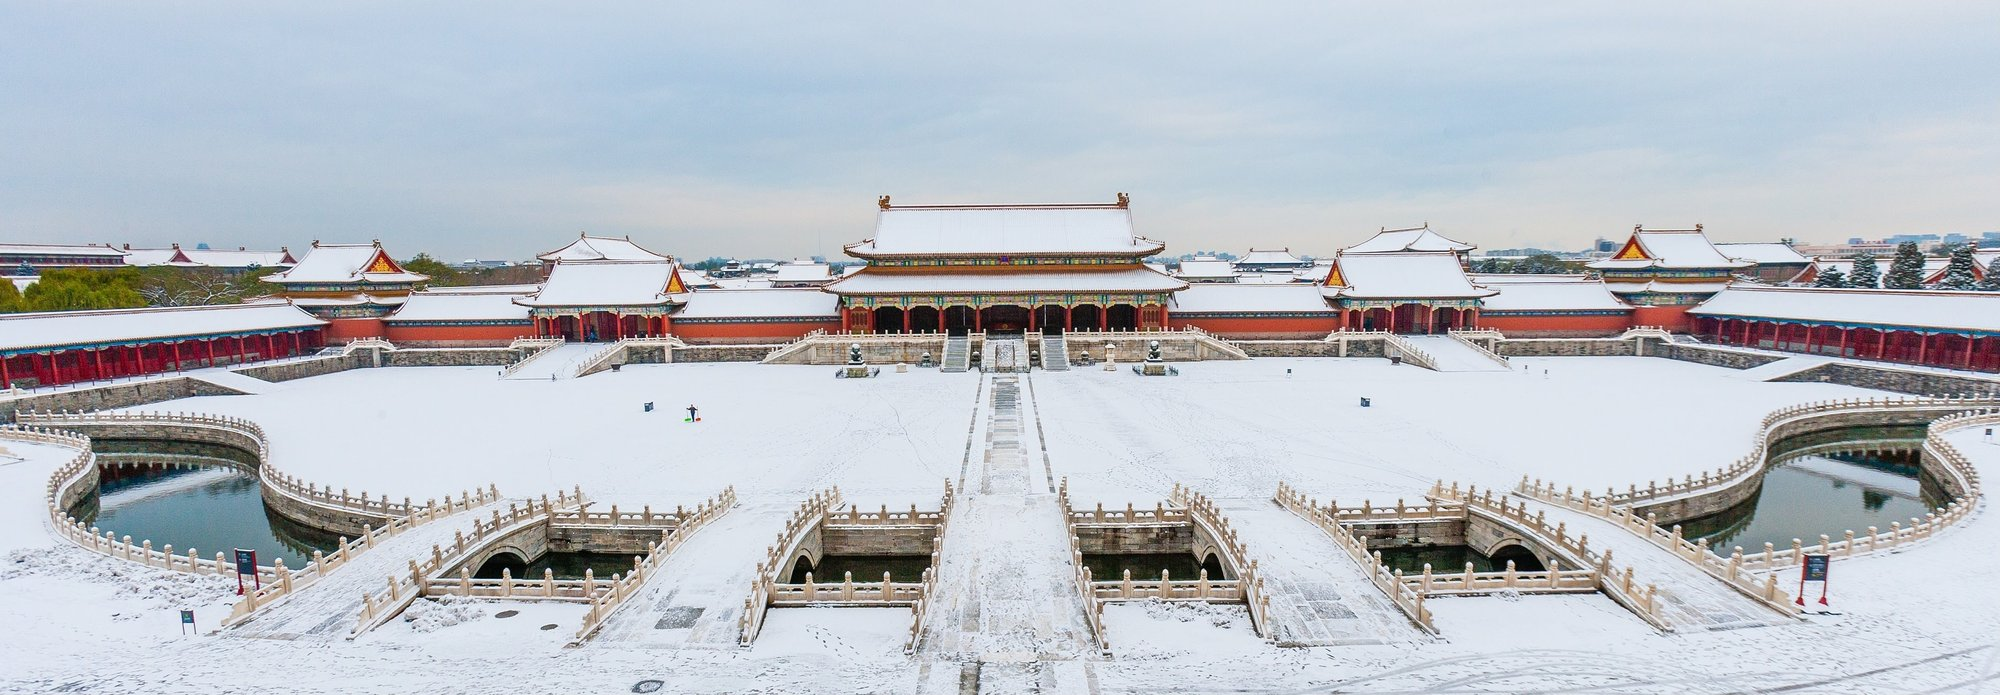 Enjoy a special visit to the Palace Museum